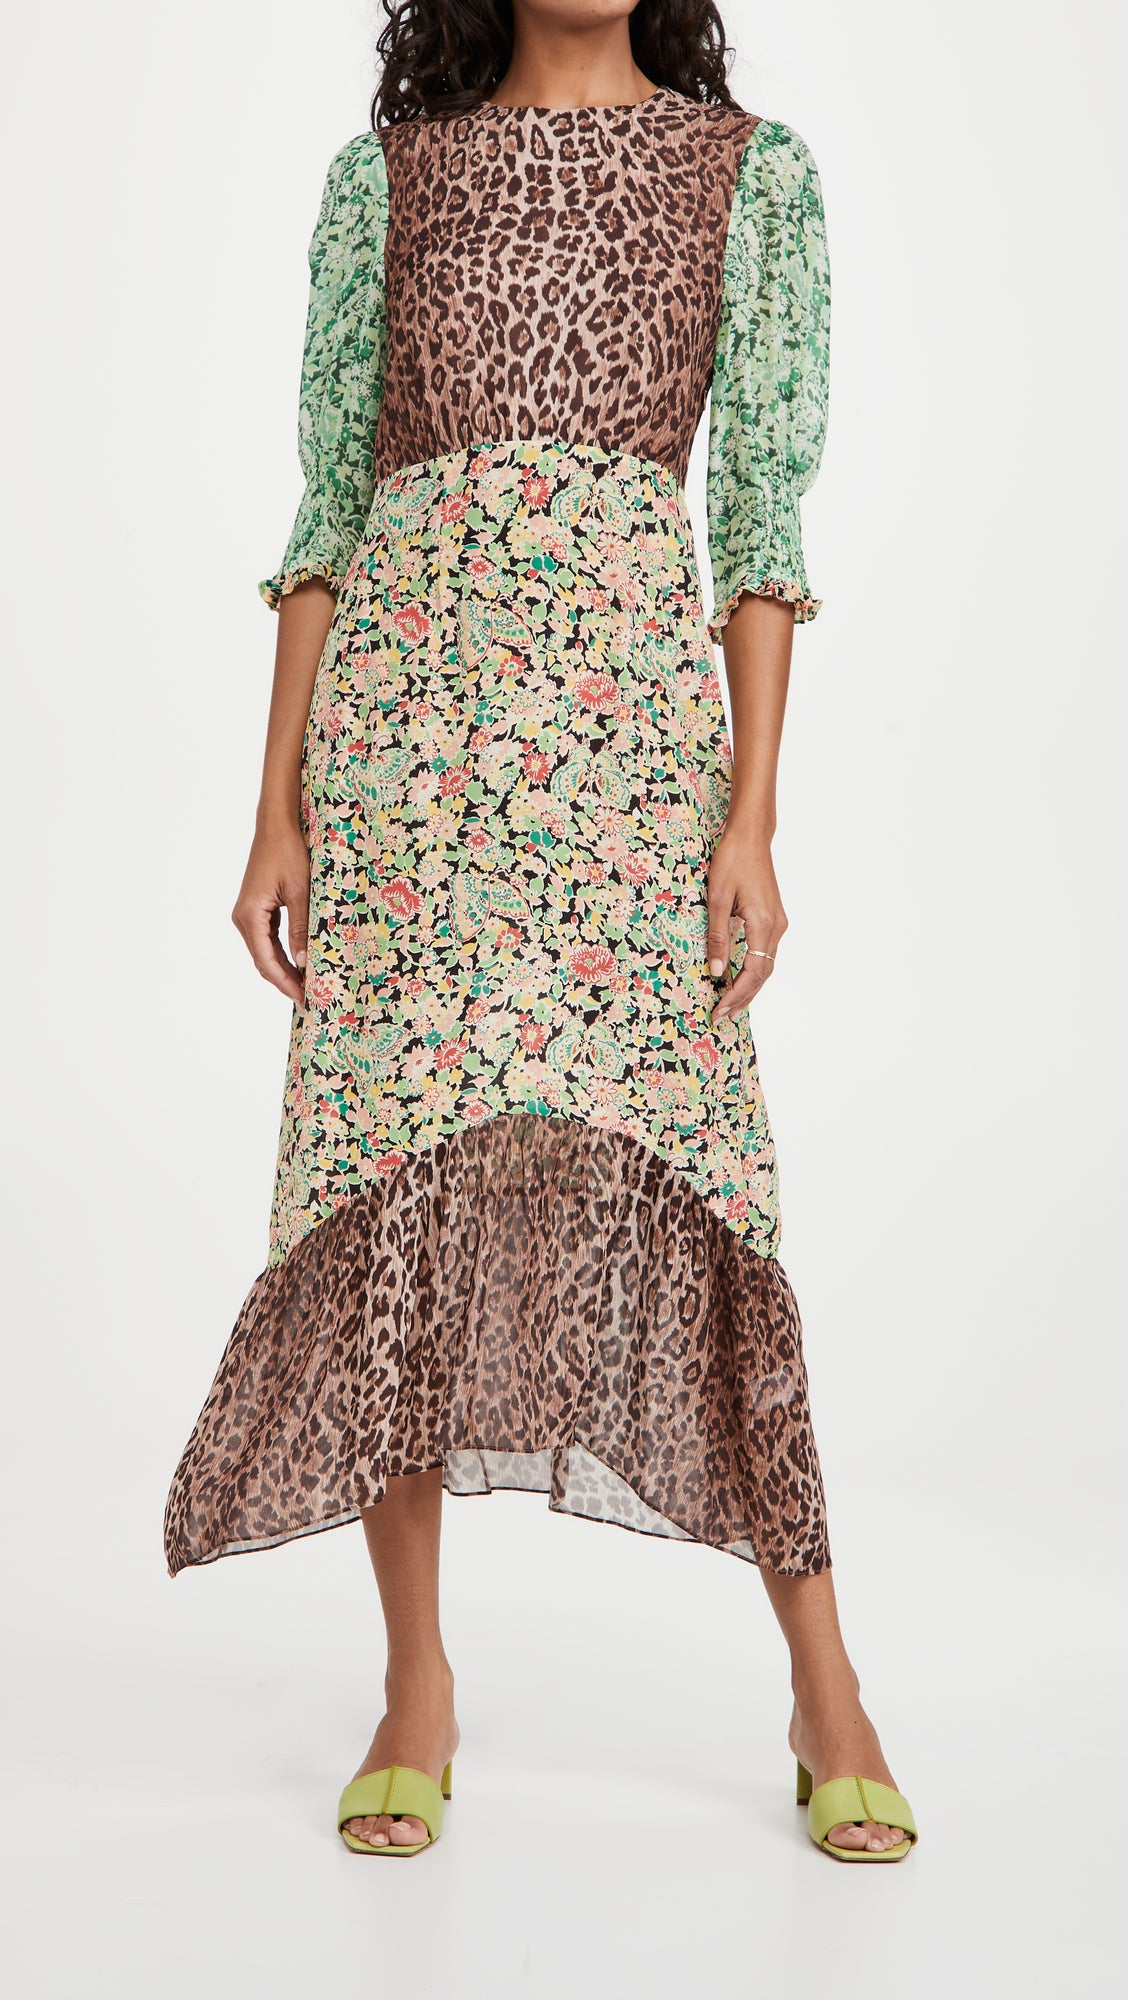 model in midi dress with leopard bodice and hemline, pink, black, and green floral skirt, and green floral three quarter sleeves